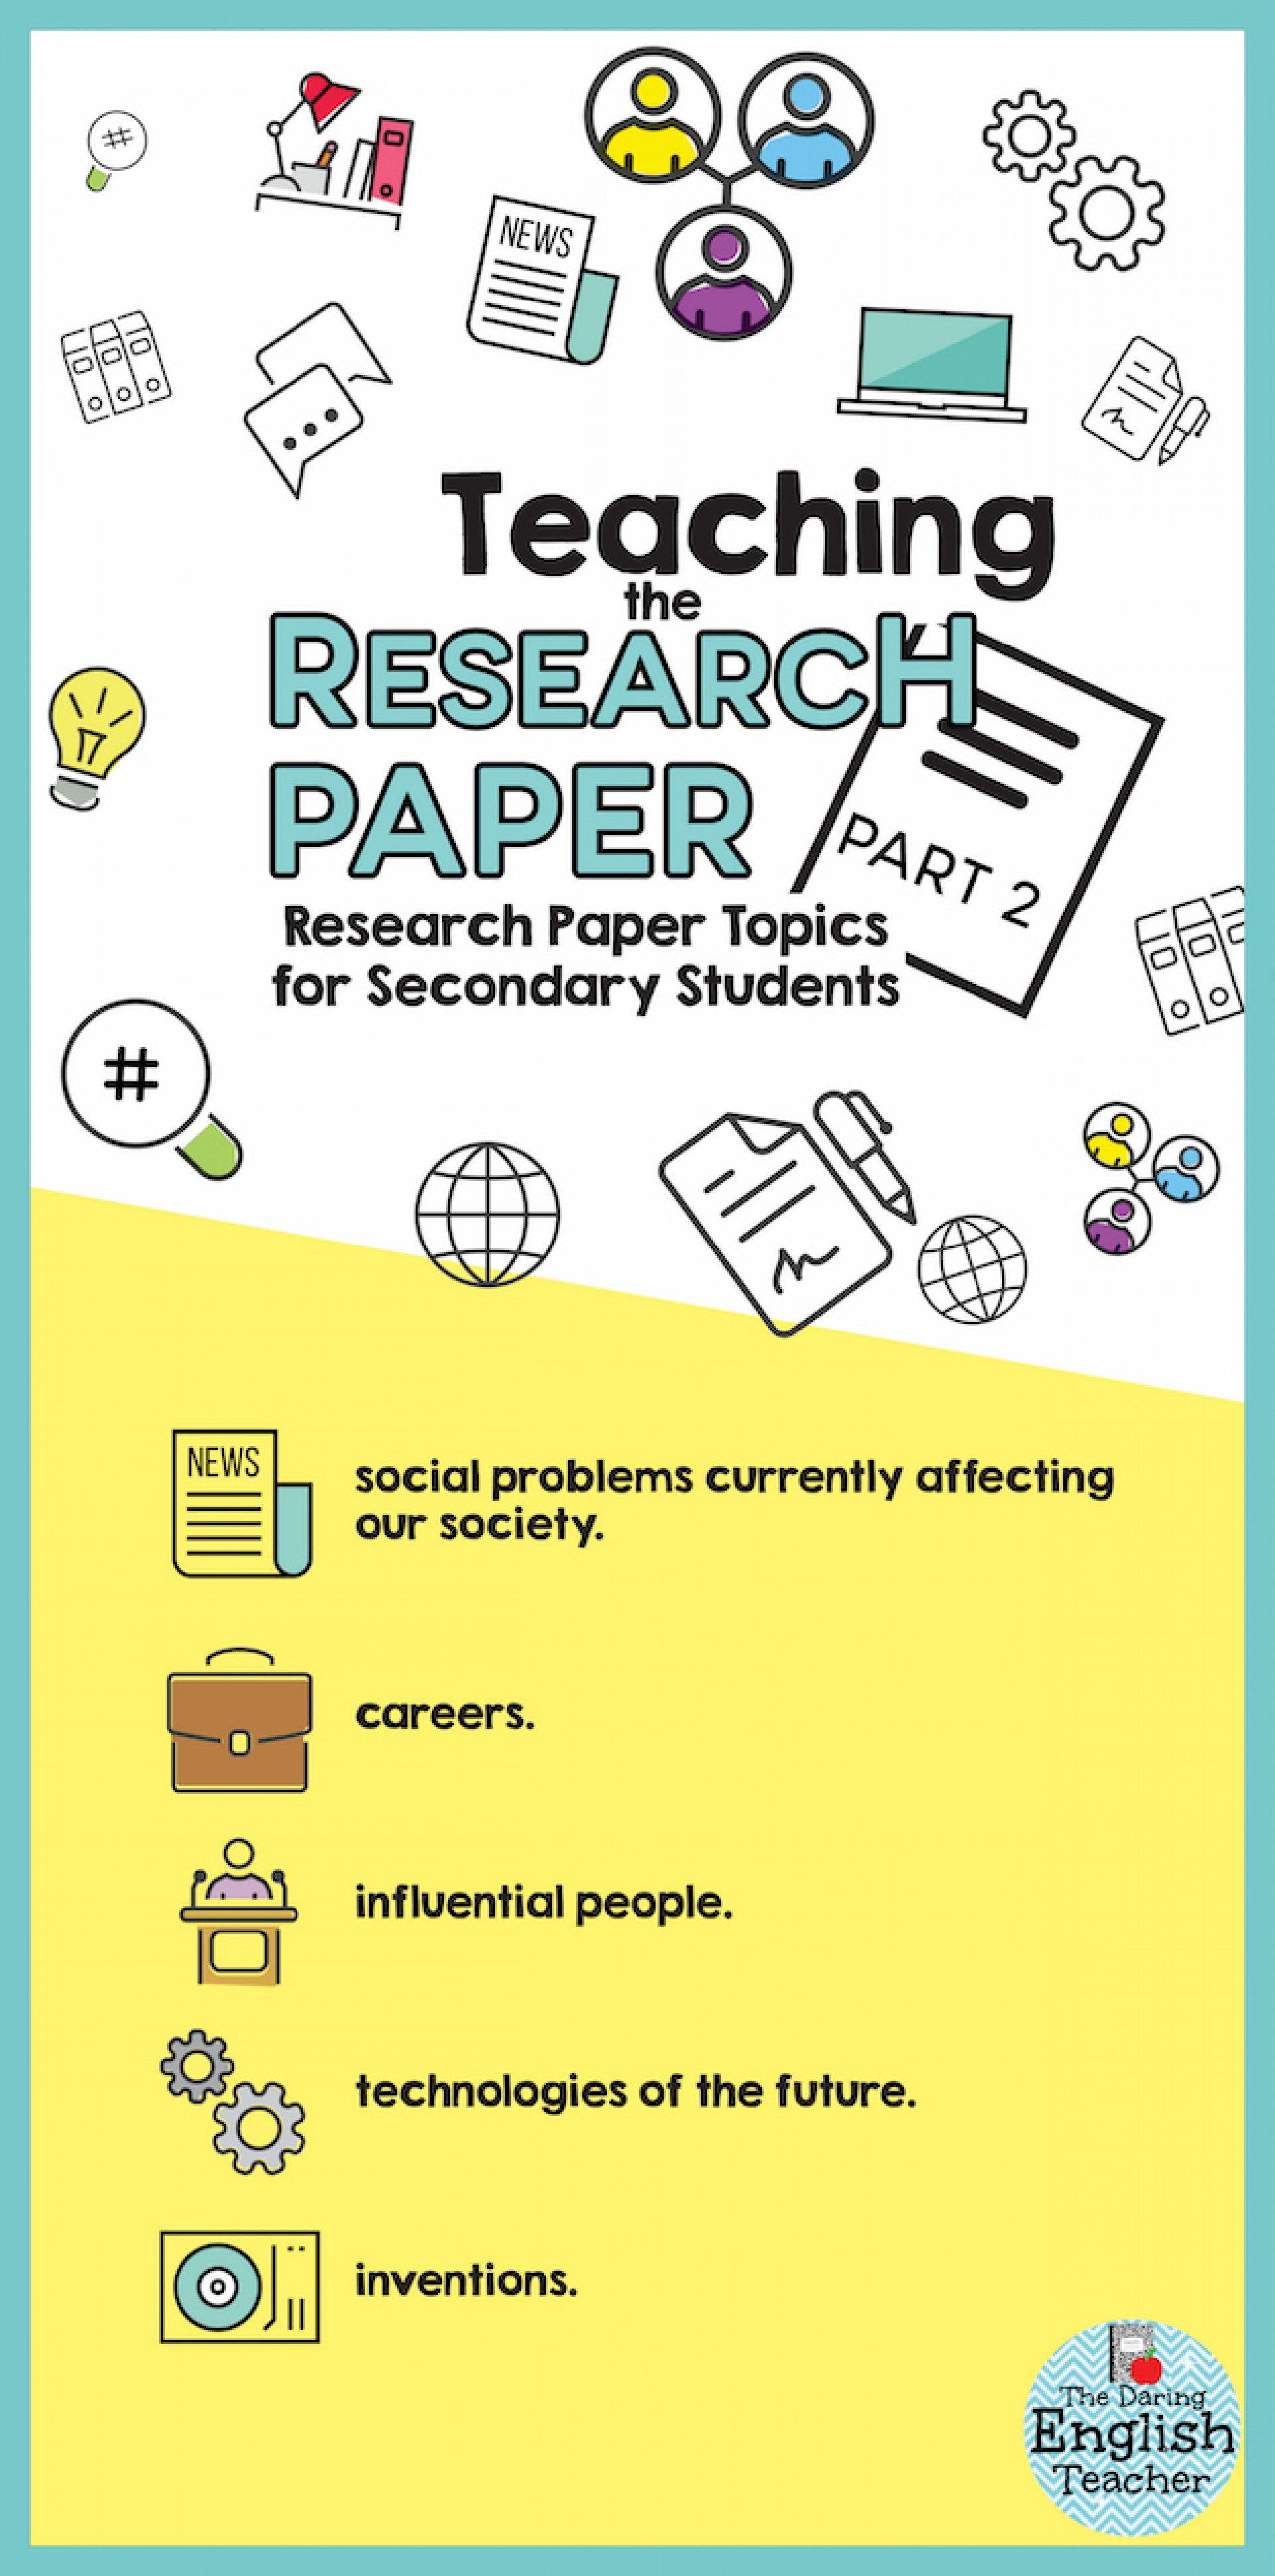 020 Infographic2bp22b2 Research Paper Topic For Unusual A Topics In Criminal Justice Psychology Business Administration 1920